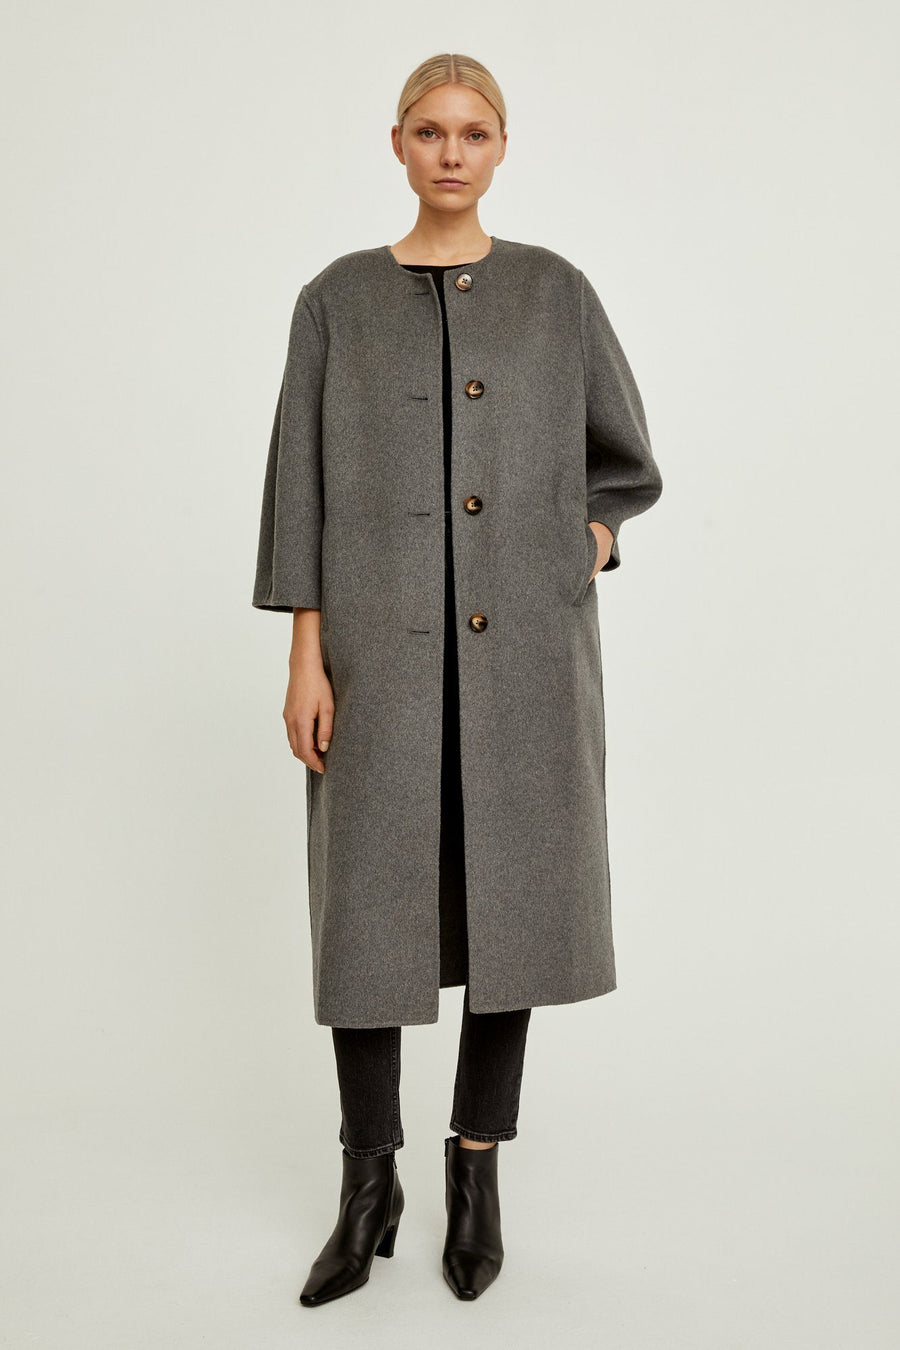 THIRA COAT - GREY Coat Stylein